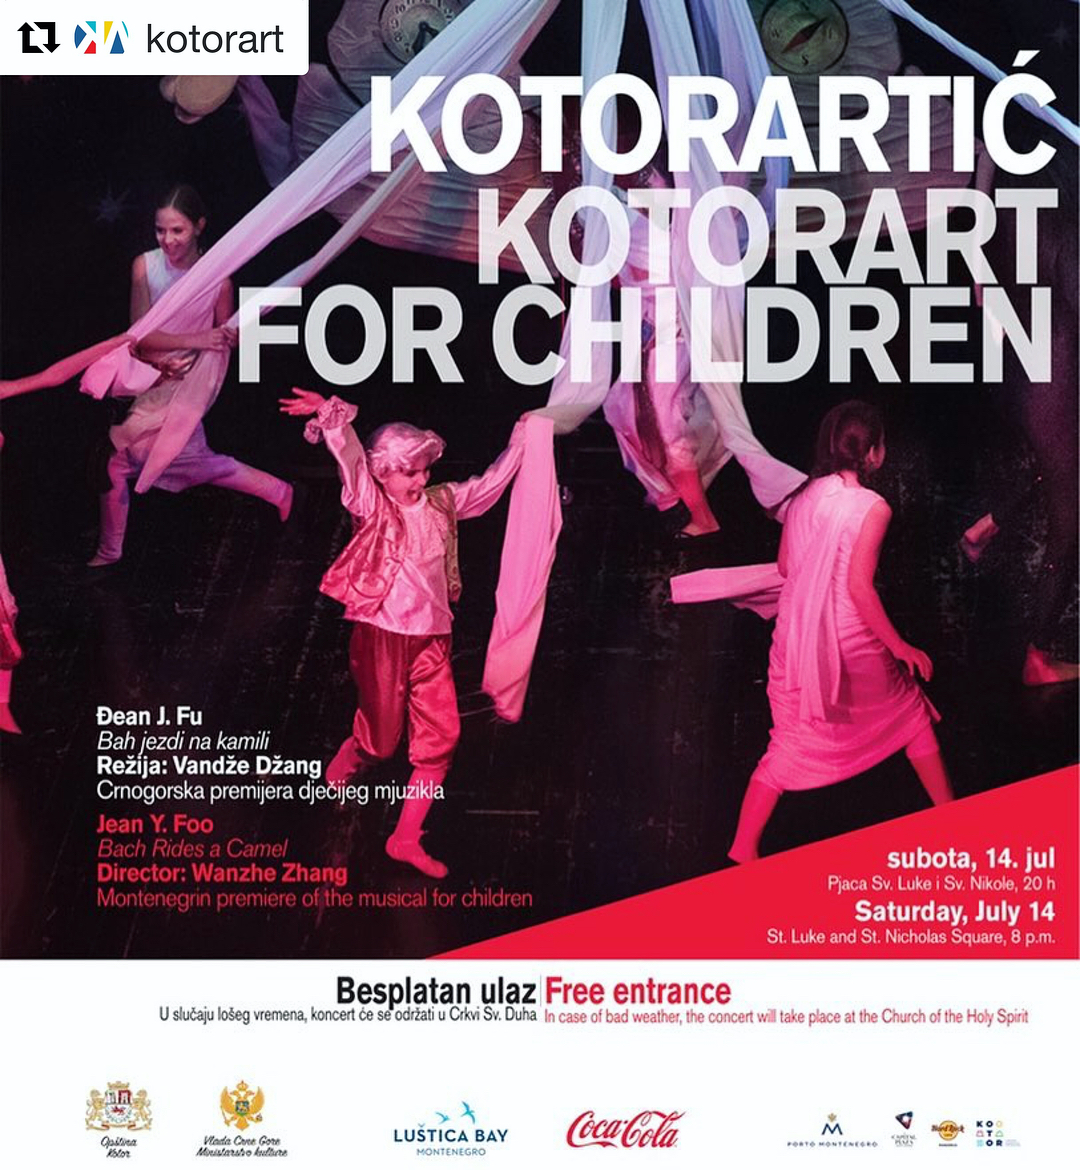 KotorArt for Children